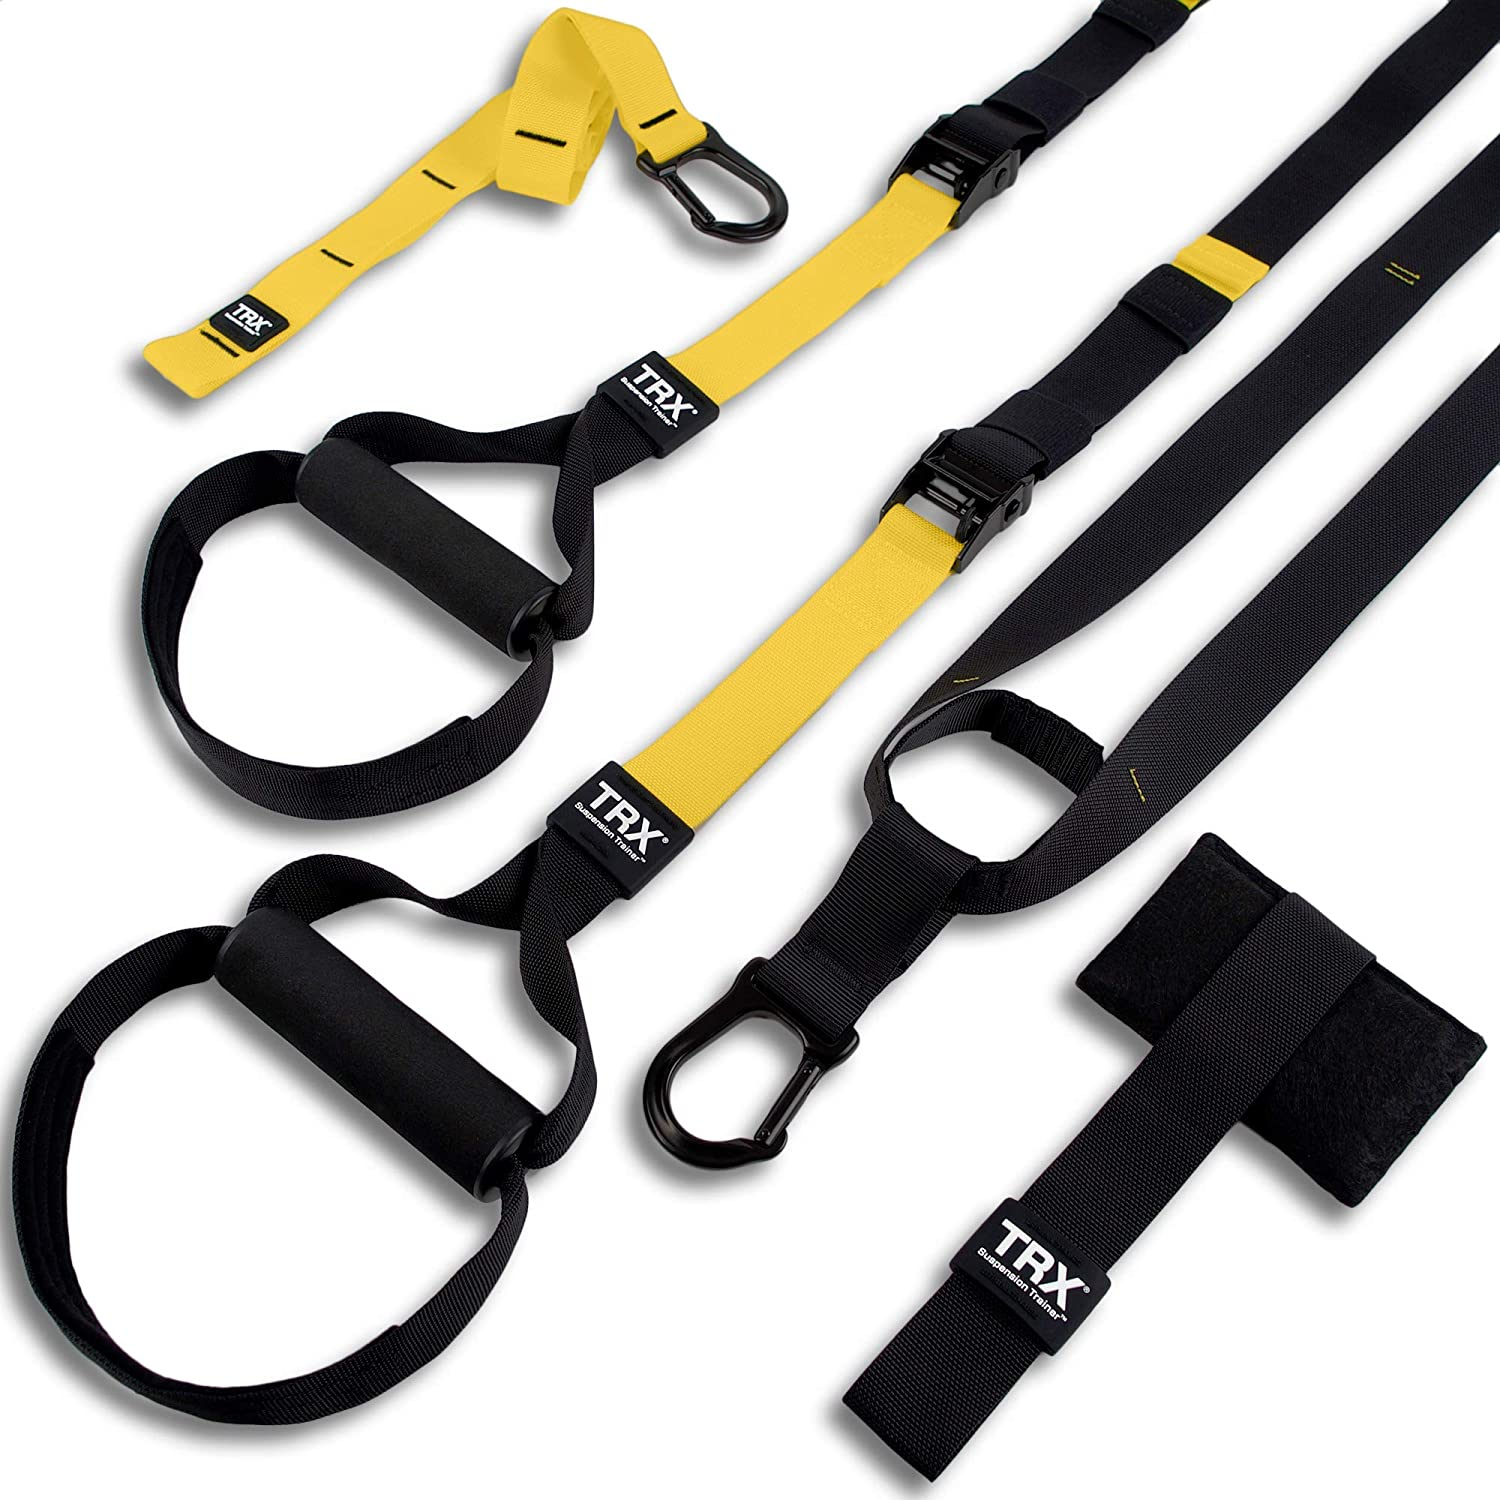 TRX All In One Suspension Rope - Bands Hanging Belt Tension Home Exerciser & Fitness Training